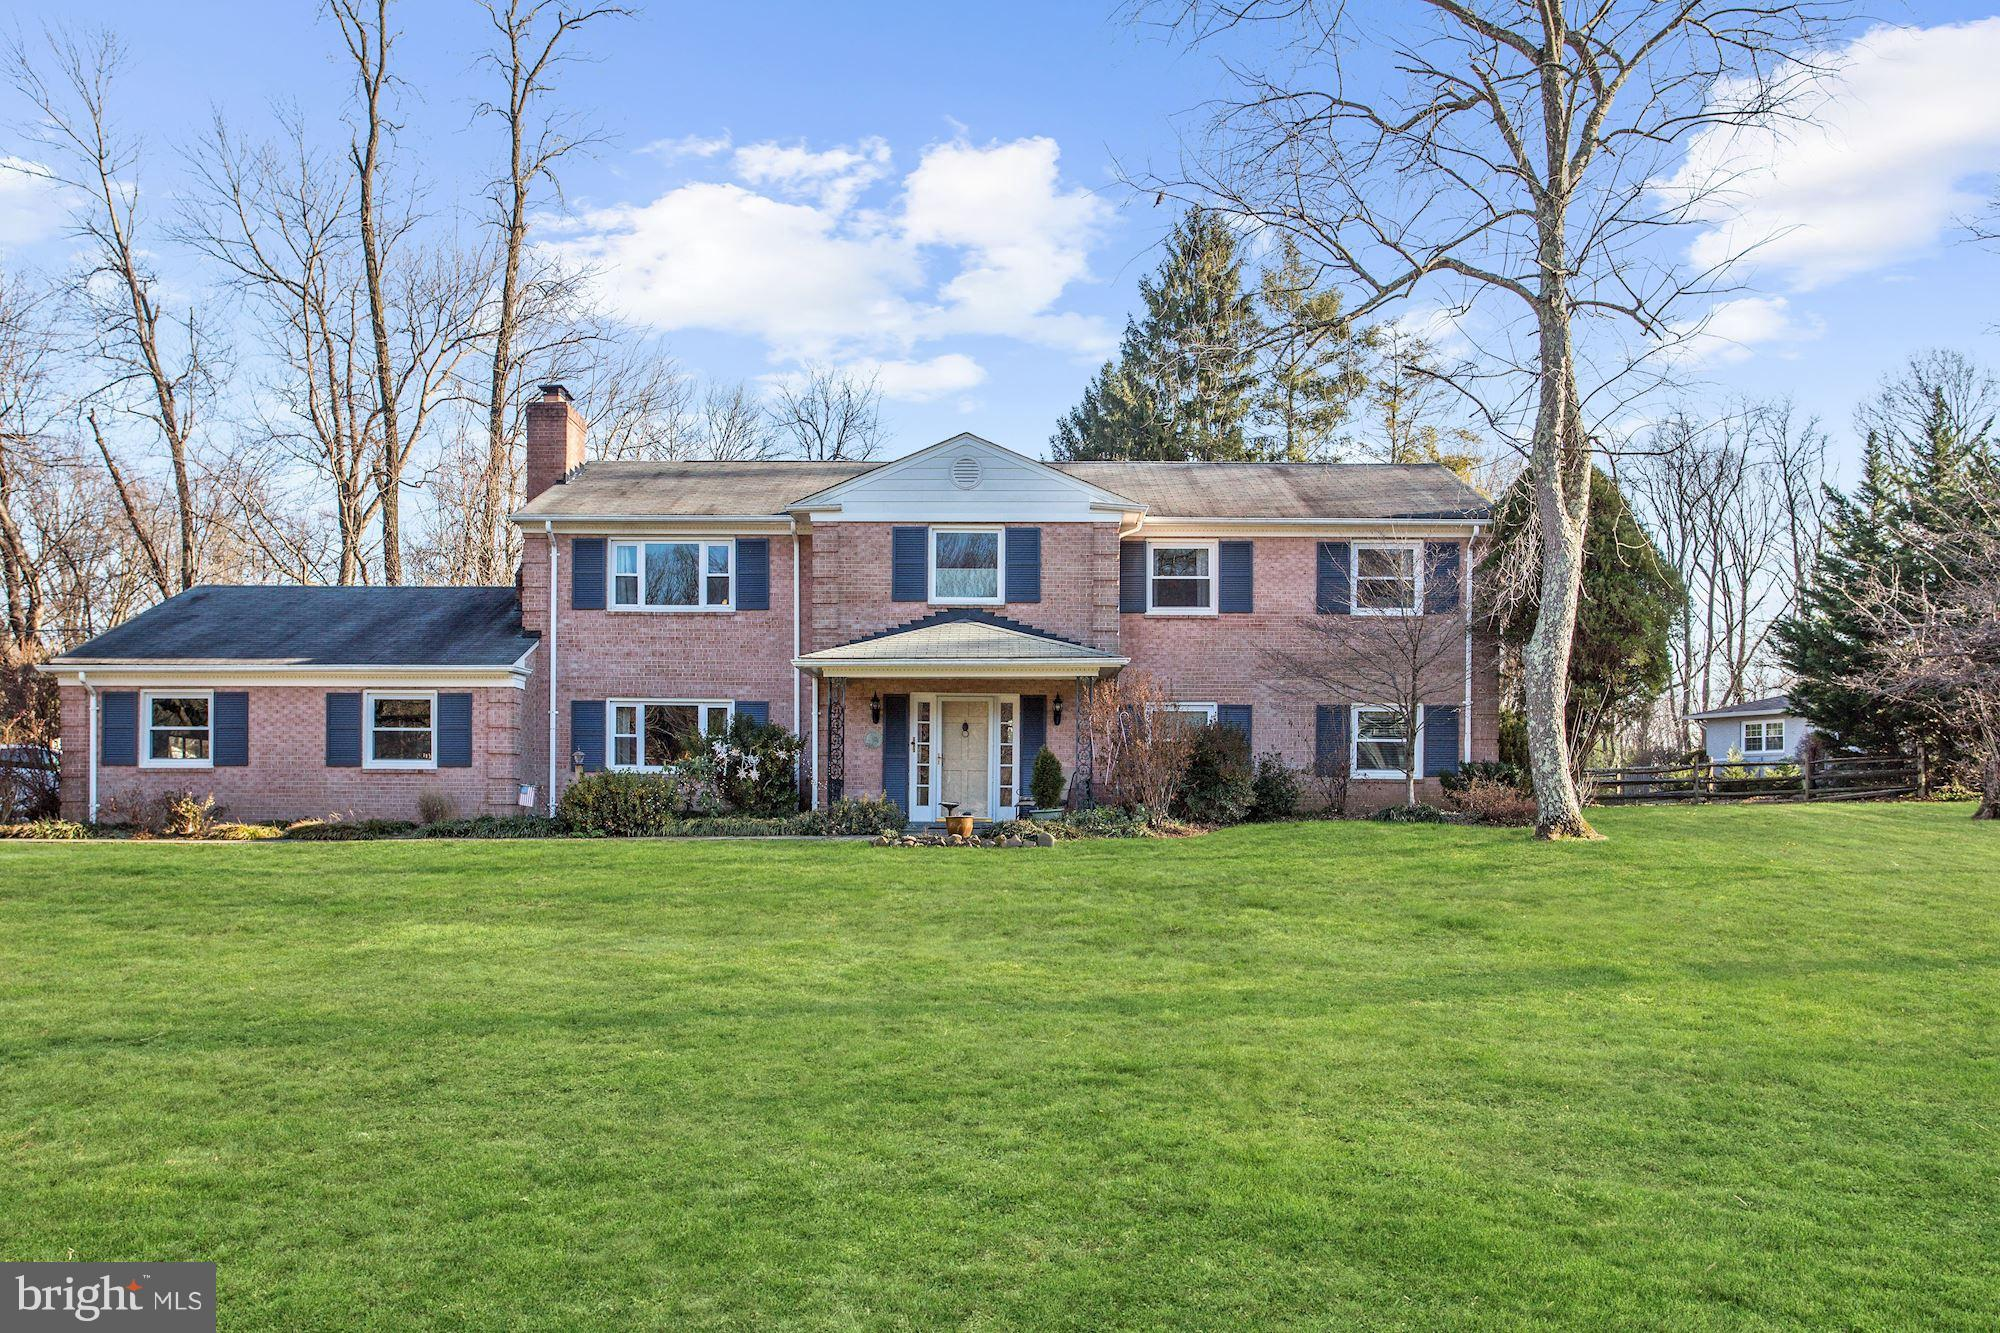 10009 COACH ROAD, VIENNA, VA 22181